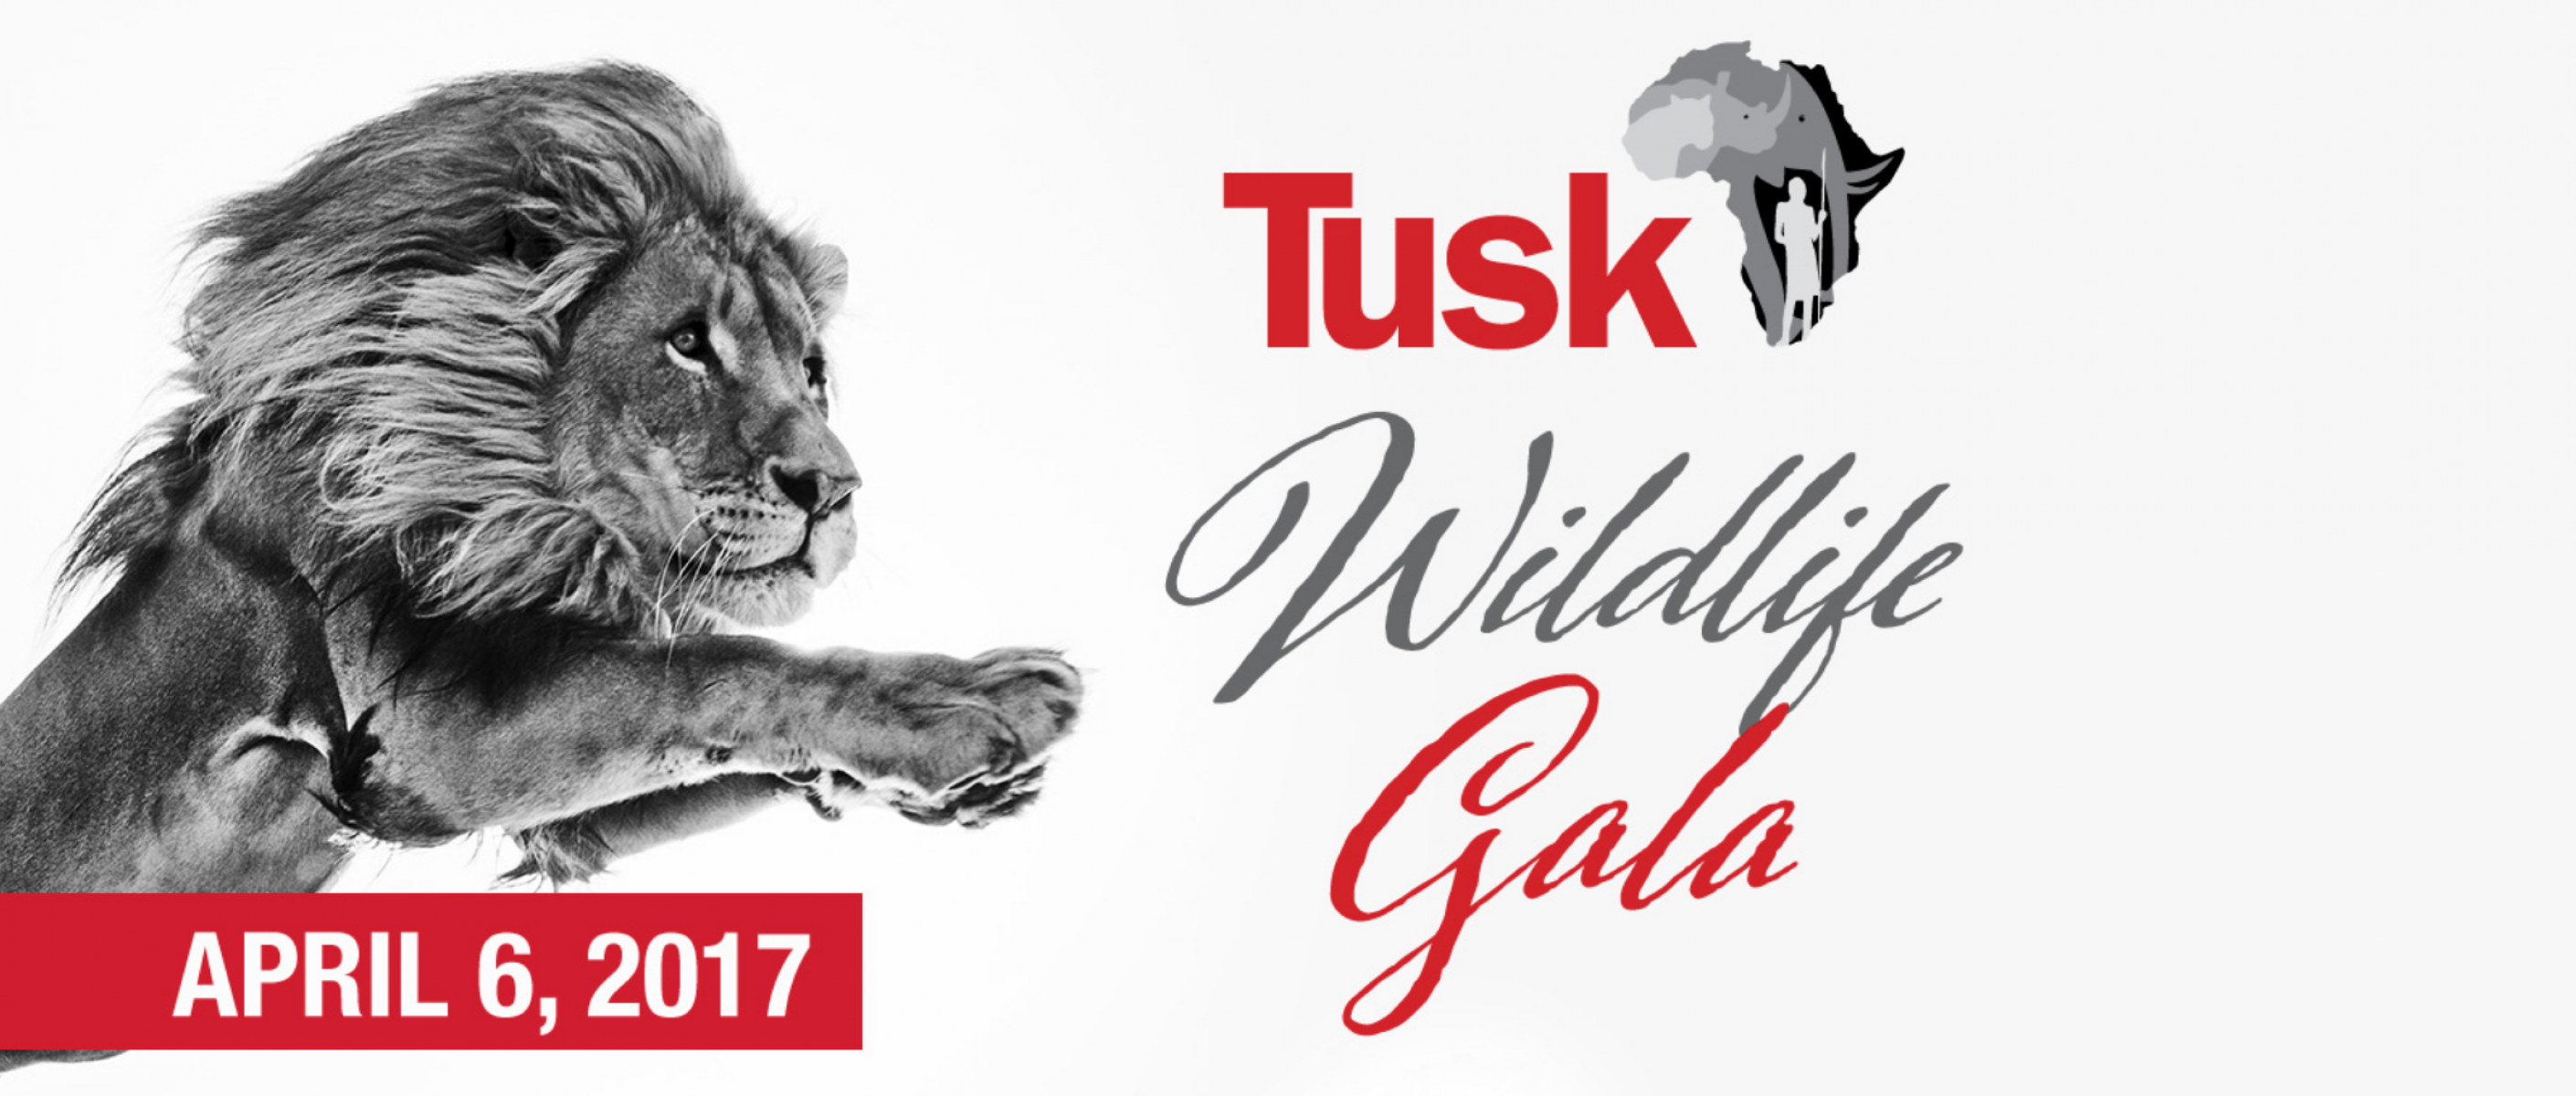 Tusk Wildlife Gala